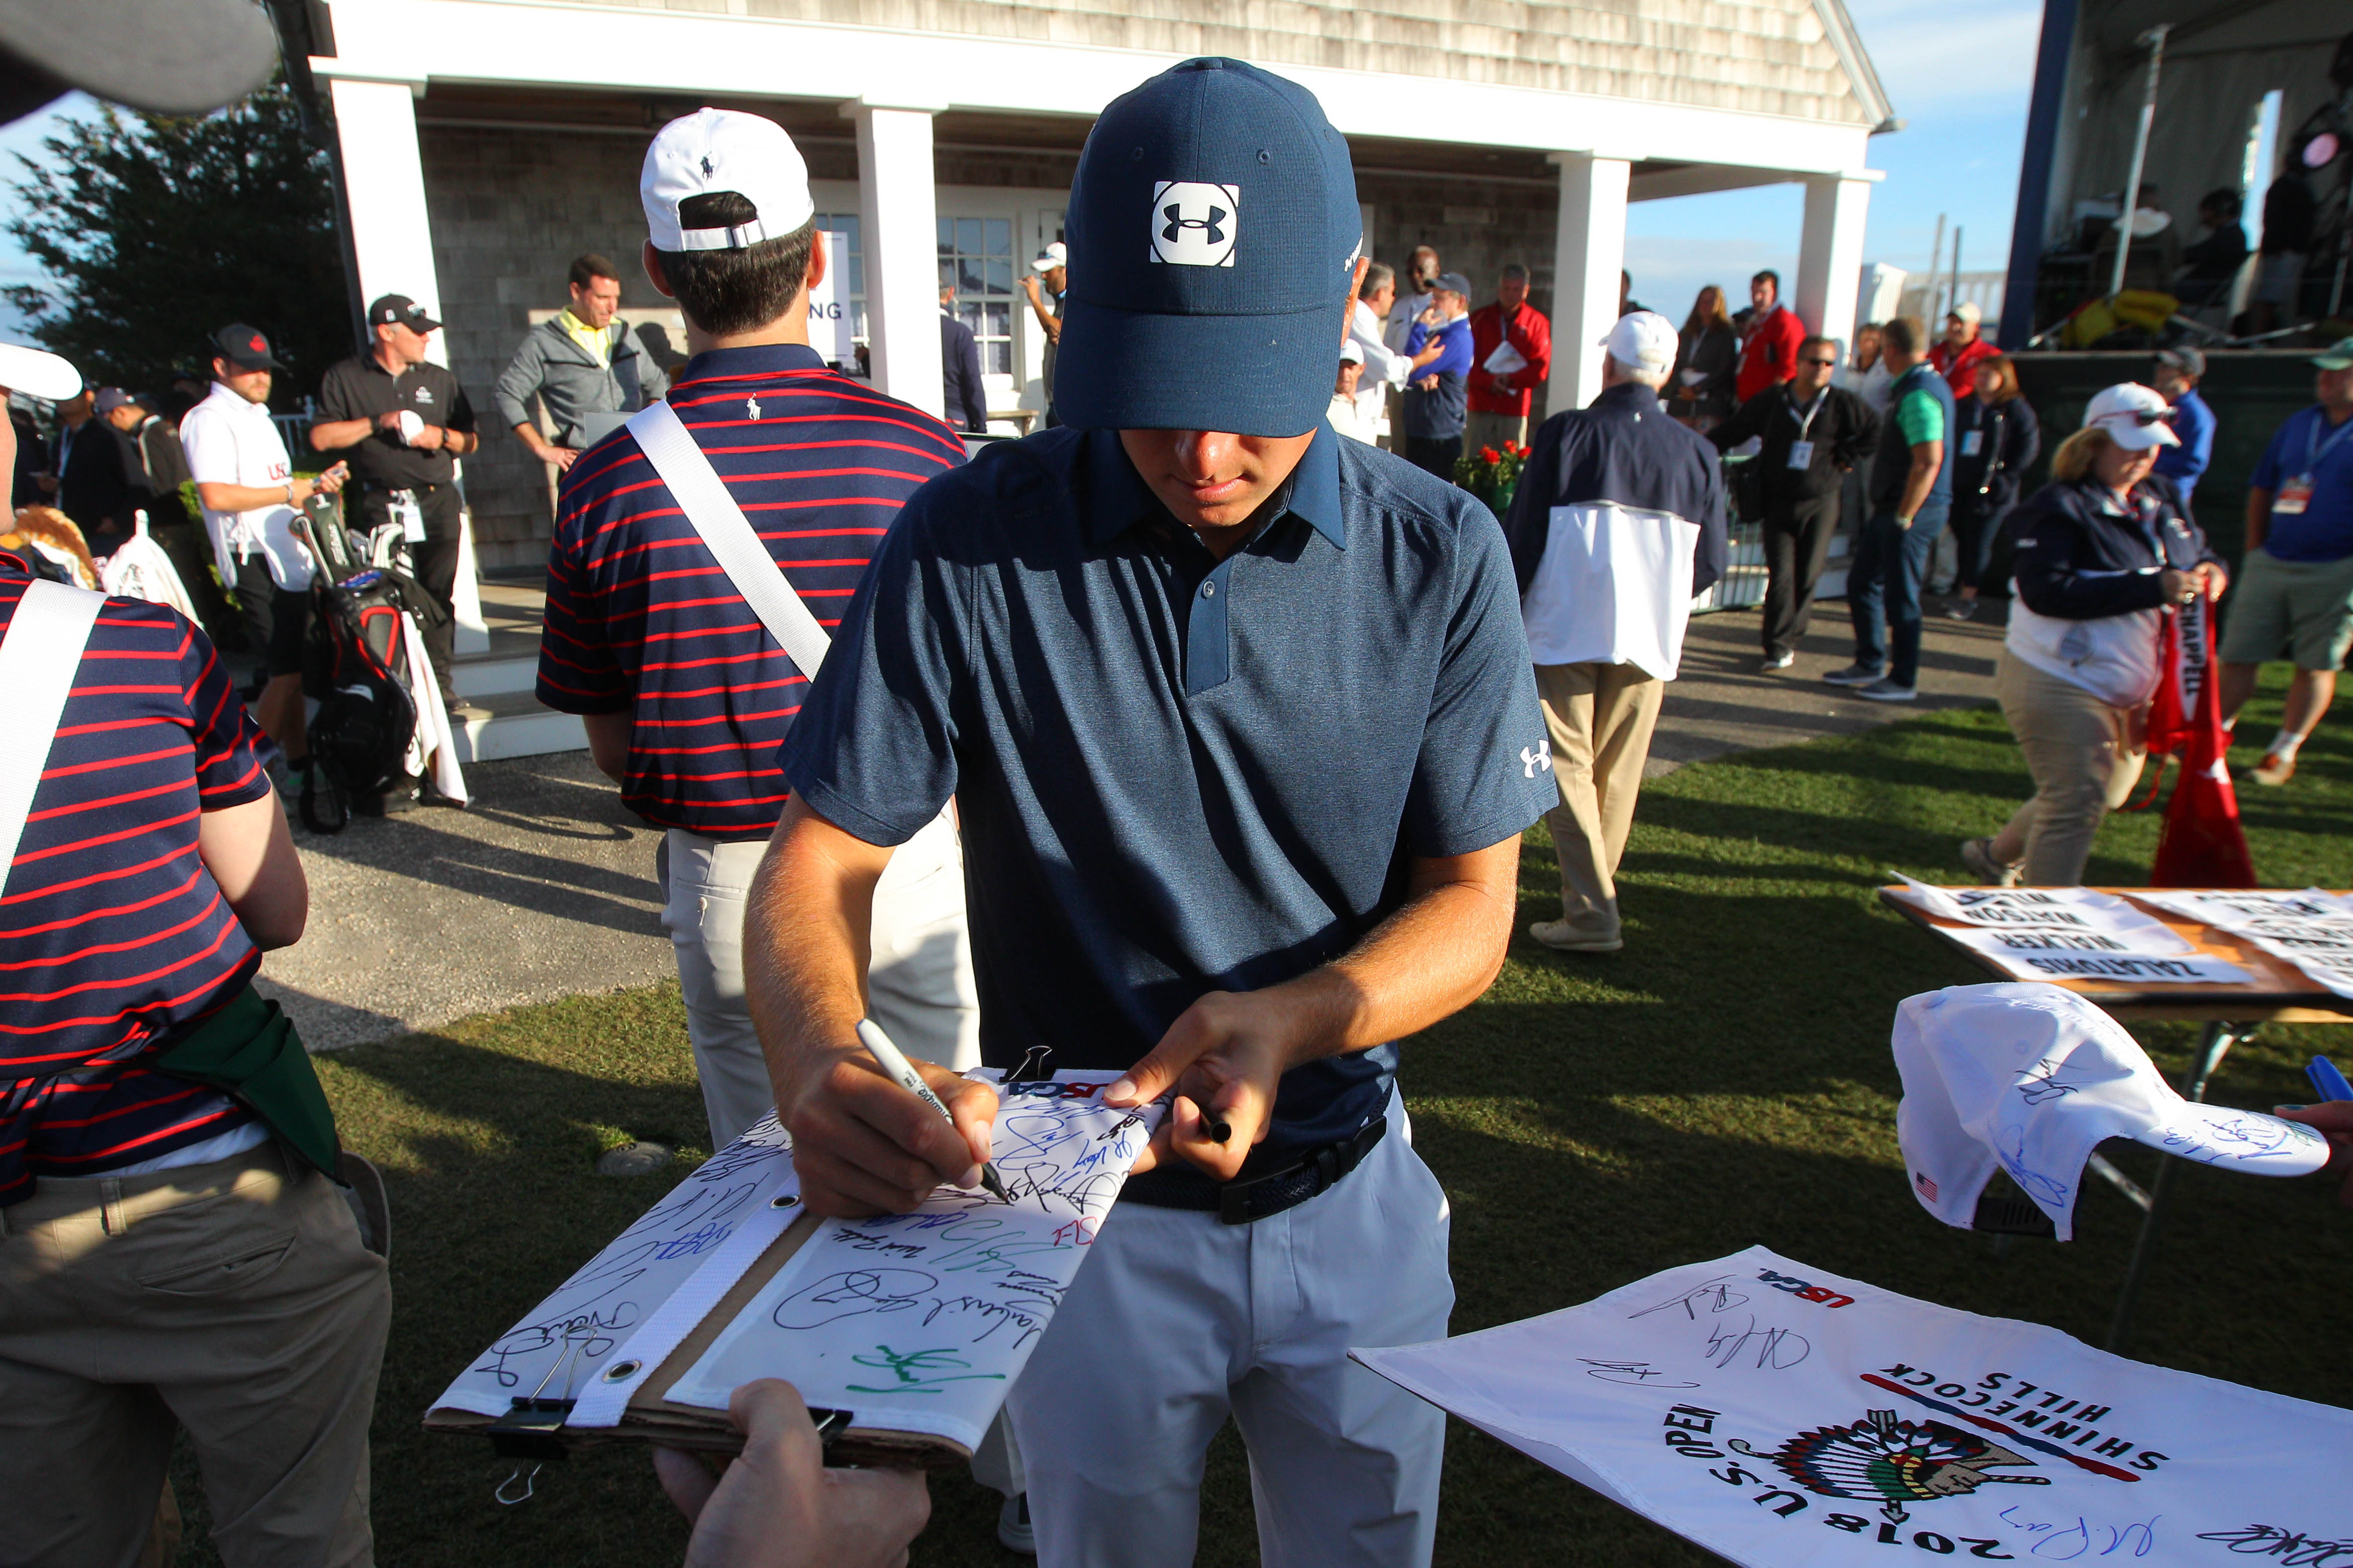 Jun 15, 2018; Southampton, NY, USA; Jordan Spieth signs autographs after completing the second round of the U.S. Open golf tournament at Shinnecock Hills GC - Shinnecock Hills Golf C. Mandatory Credit: Brad Penner-USA TODAY Sports